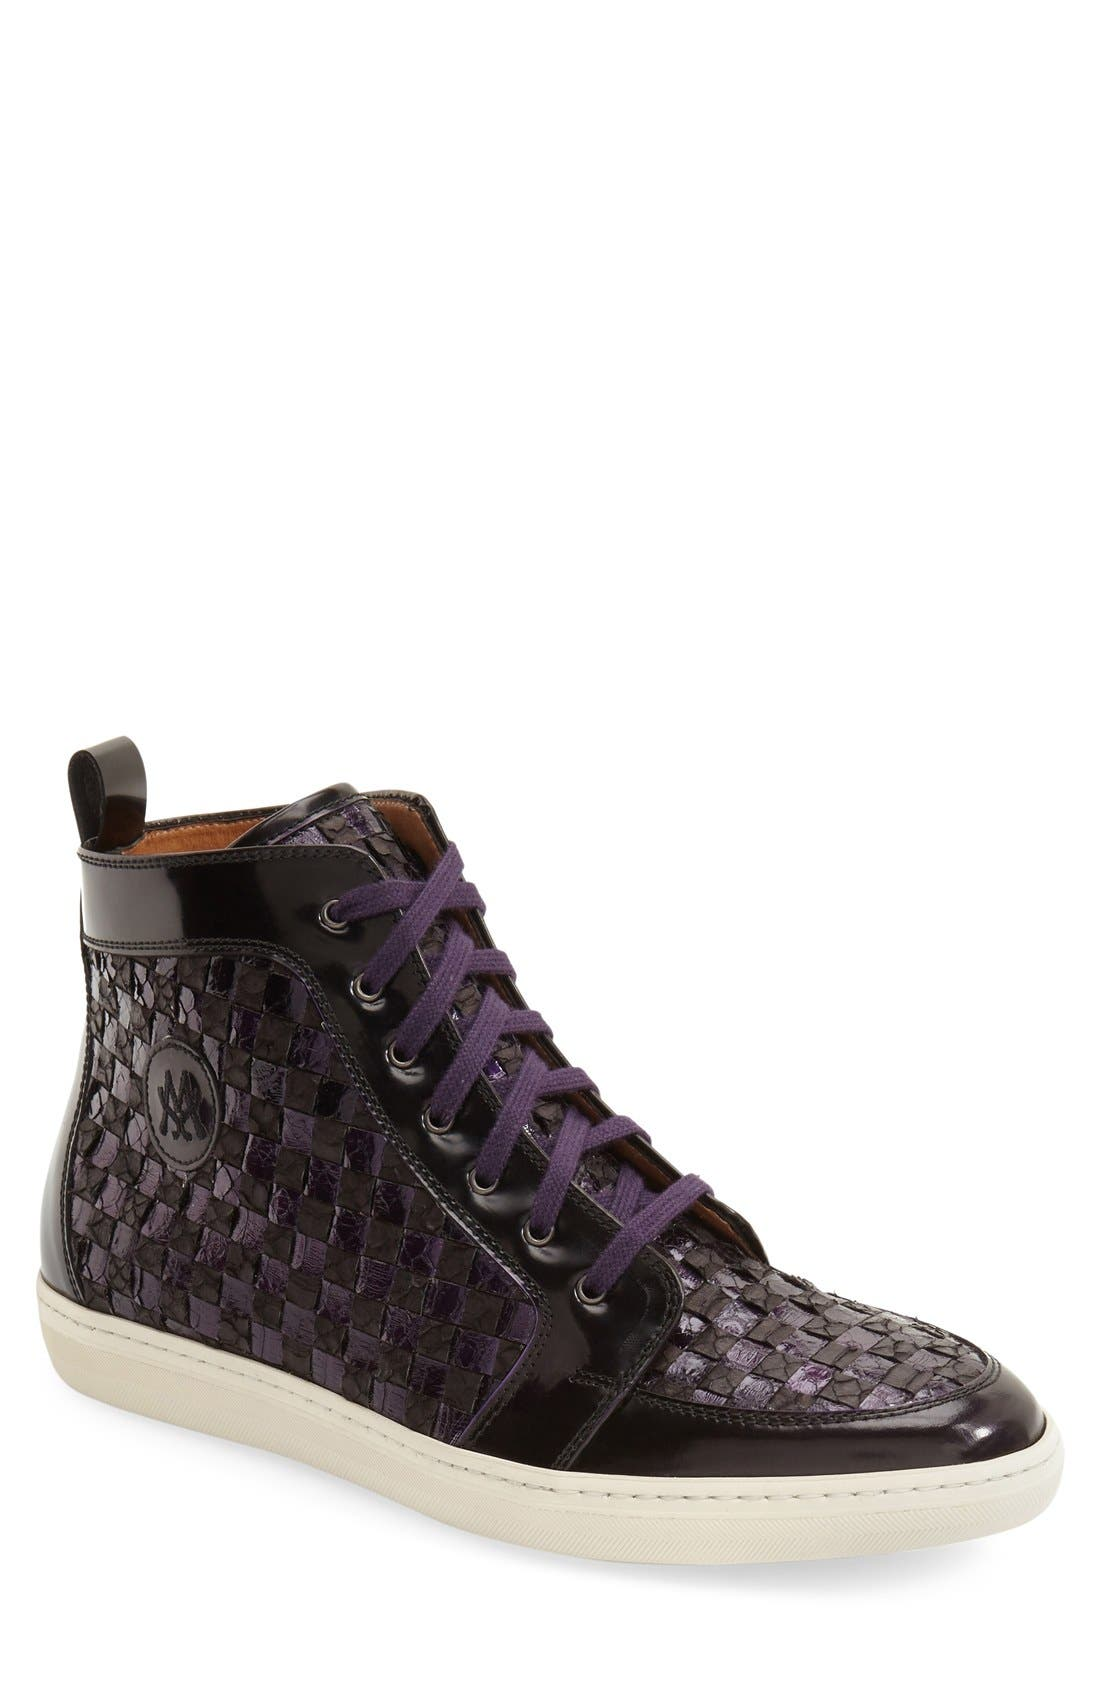 'Colonia' High Top Sneaker,                             Main thumbnail 1, color,                             248